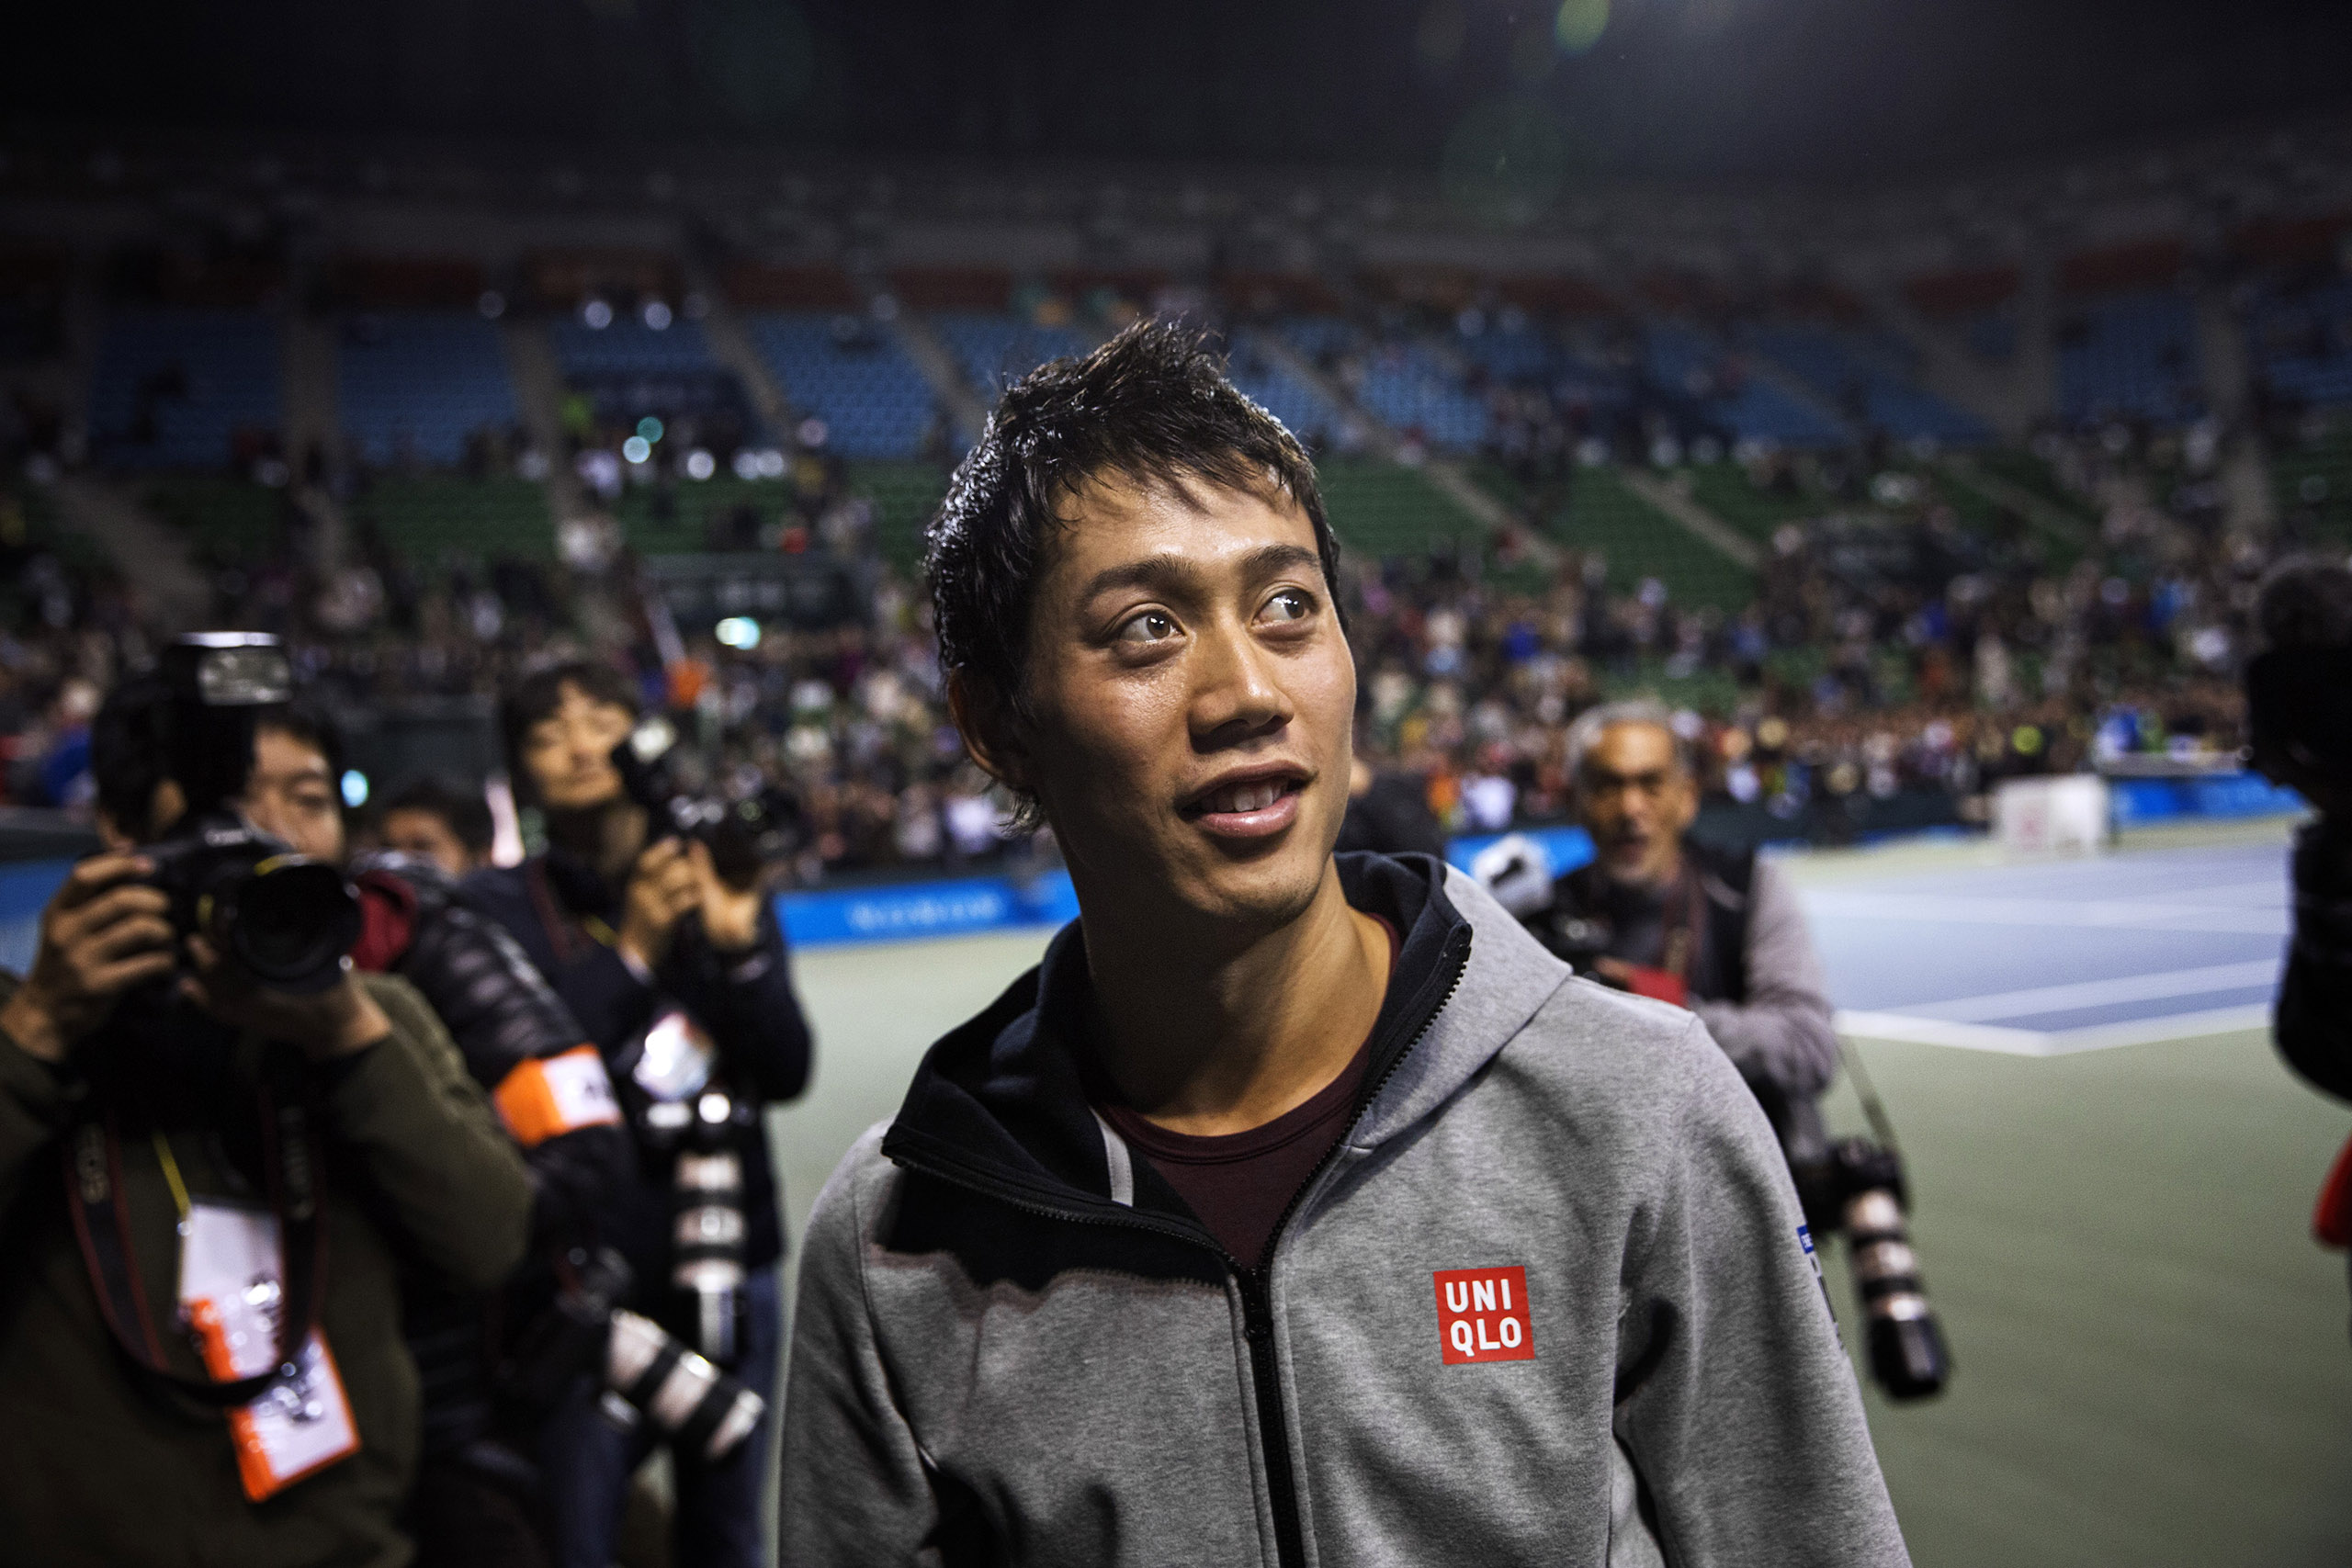 Nishikori, who reached the final of the U.S. Open in 2014, is now the No. 5–ranked tennis player in the world